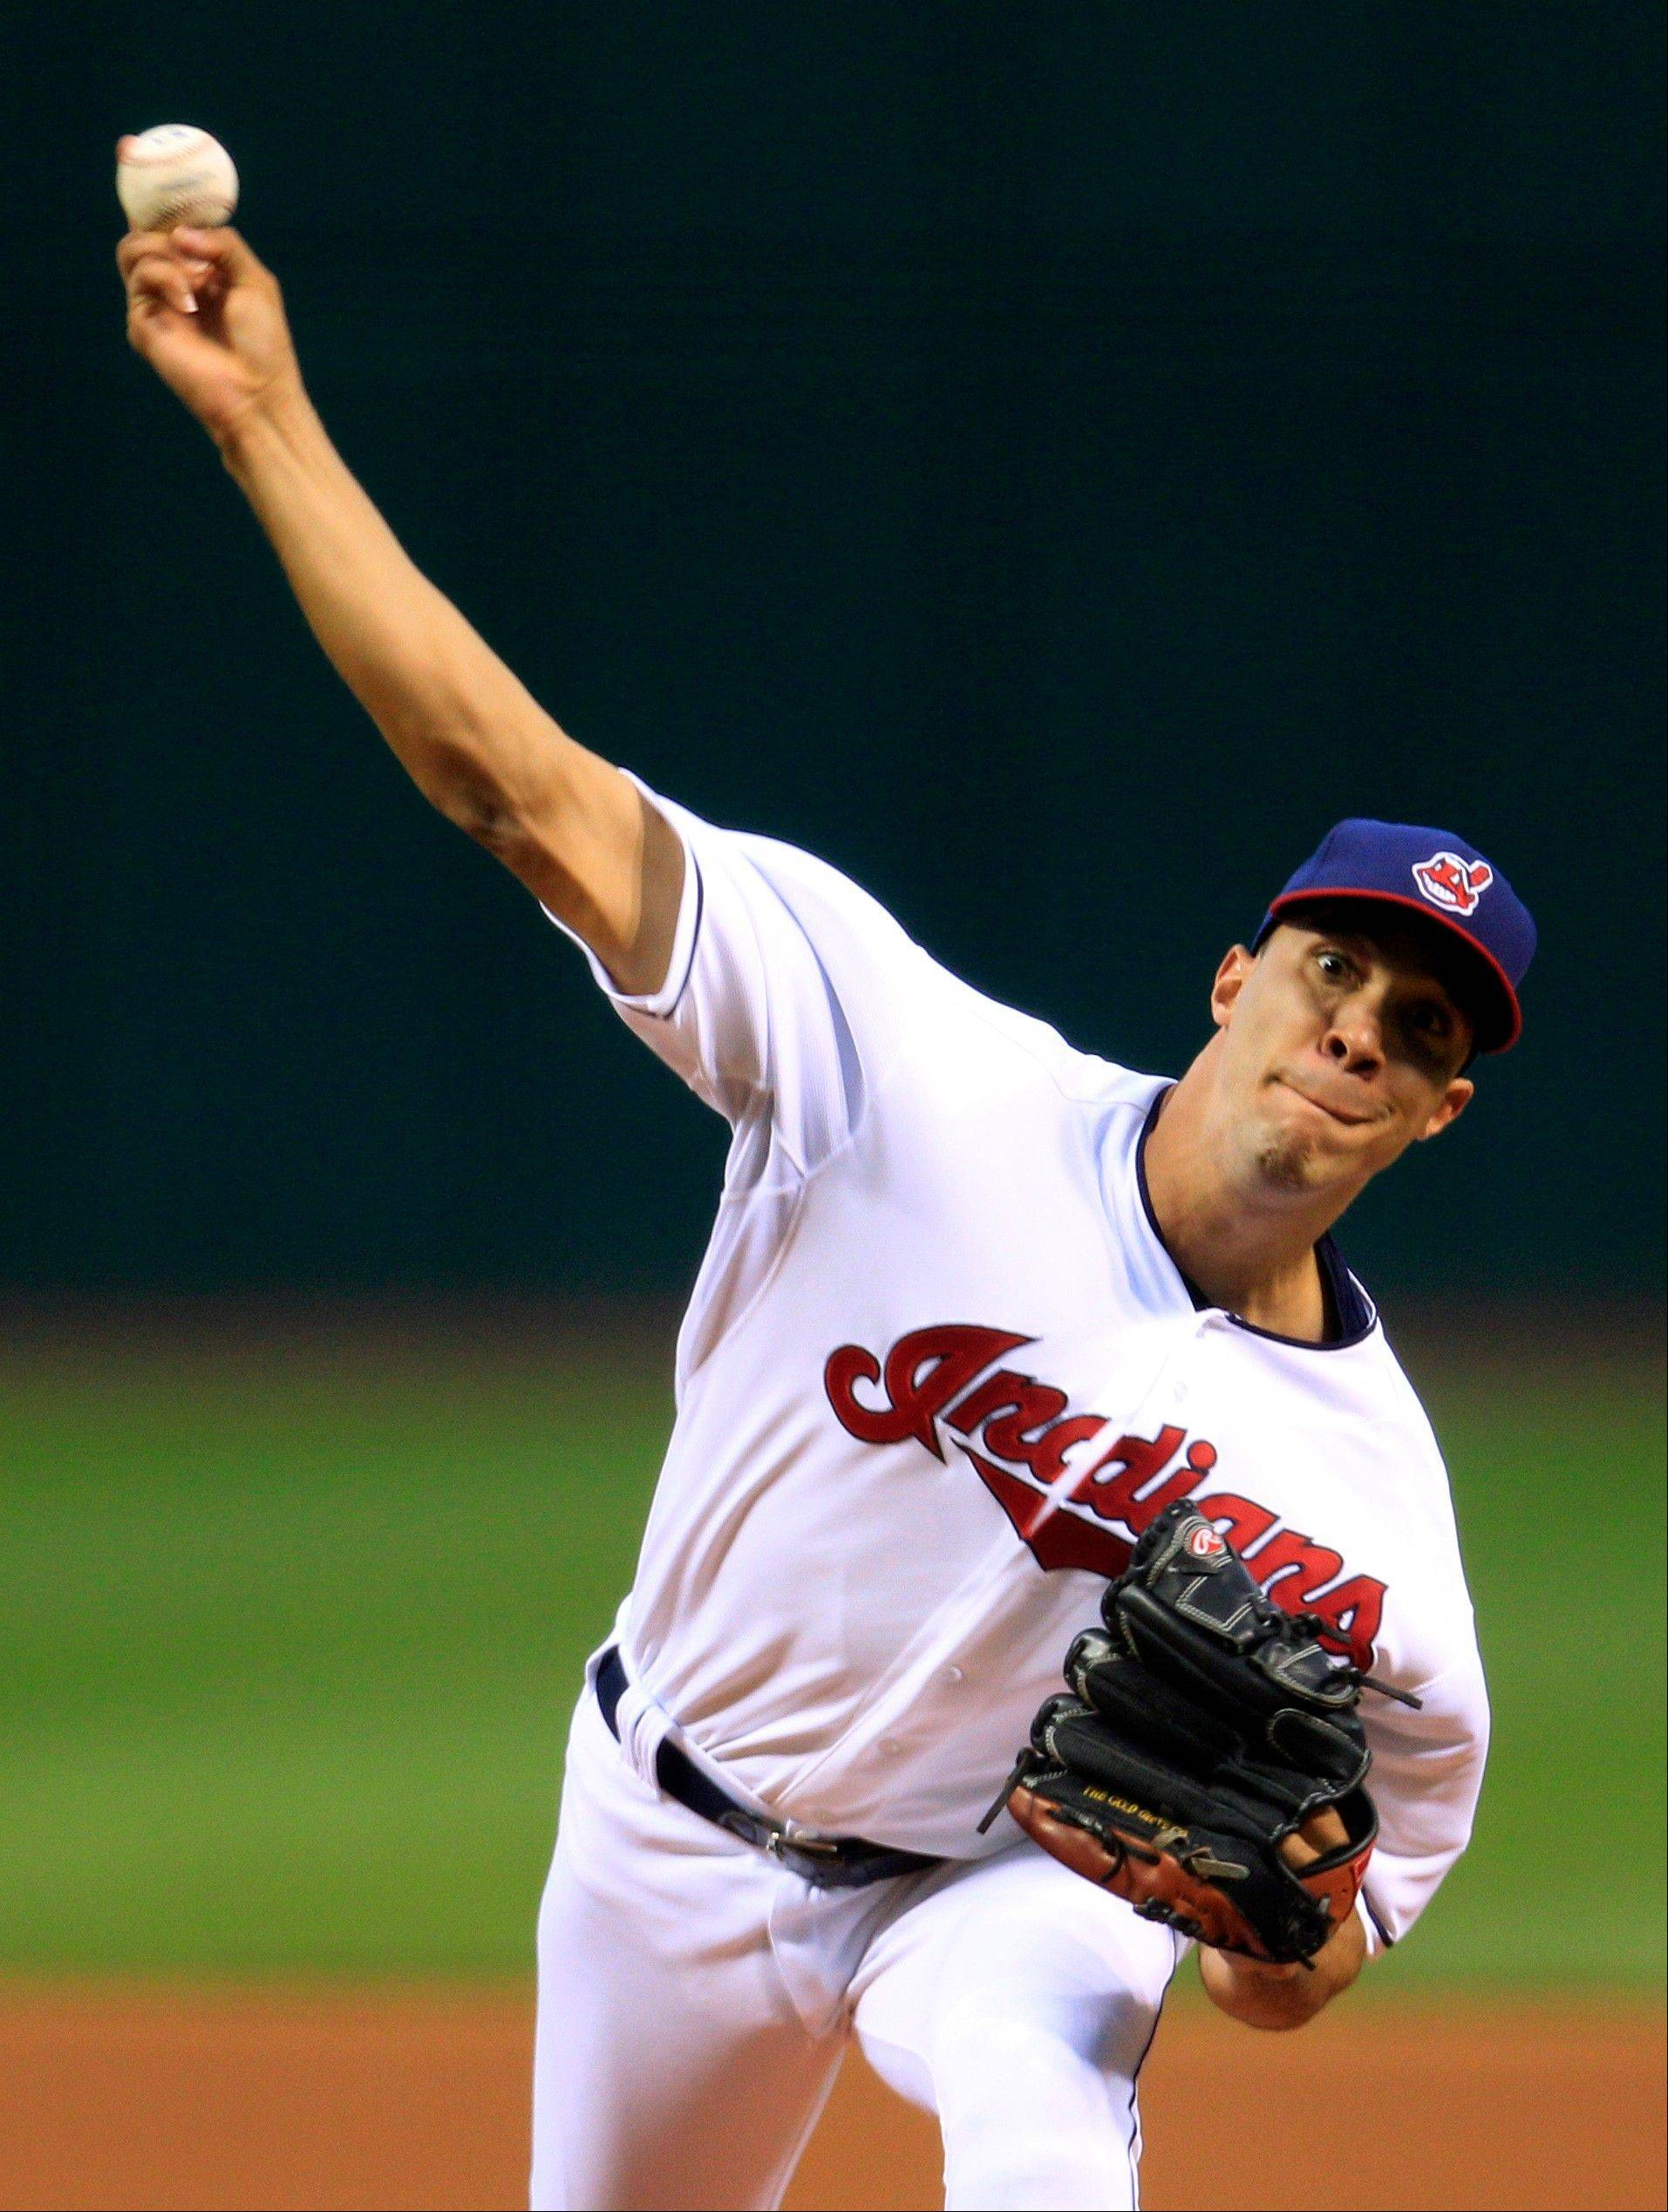 Indians starting pitcher Ubaldo Jimenez allowed three runs over six innings Thursday as Cleveland won its second straight after losing 11 in a row.